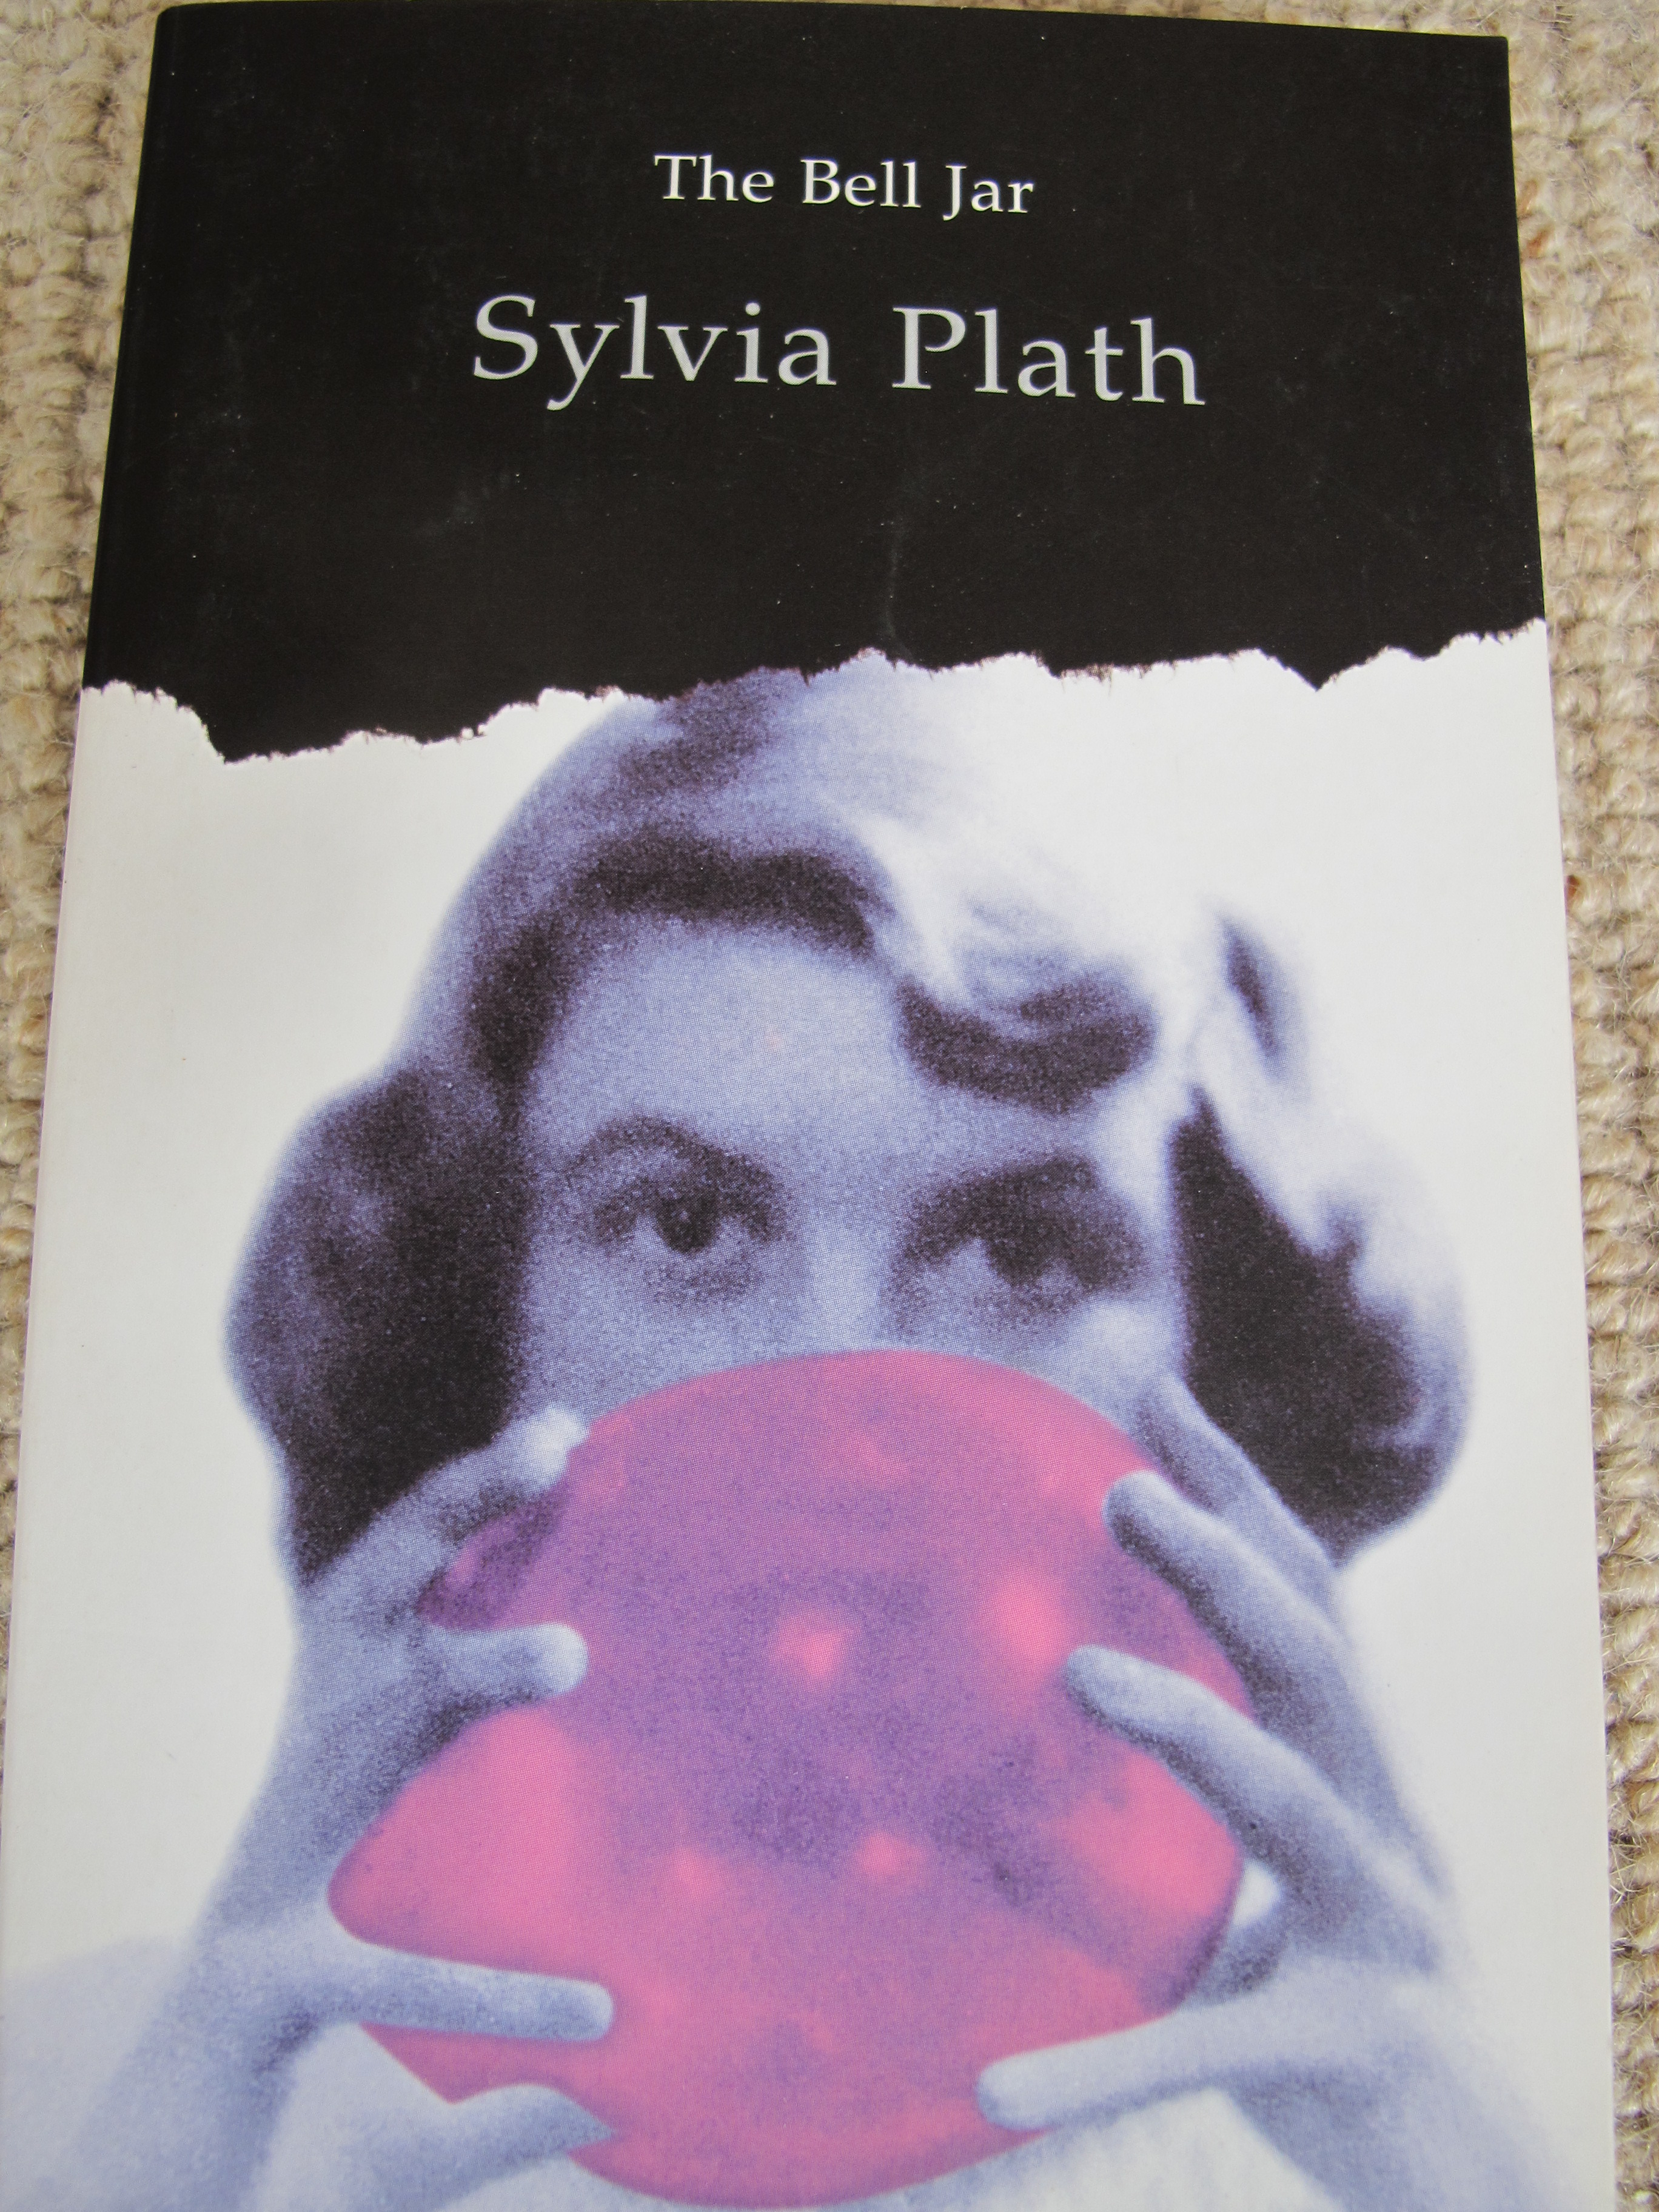 a literary analysis of bell jar by sylvia plath The bell jar was originally published under the pseudonym victoria lucas in order to protect the real-life figures plath had based some of the bell jar 's characters on ghost titles before settling on the bell jar , plath considered titling the novel diary of a suicide or the girl in the mirror.